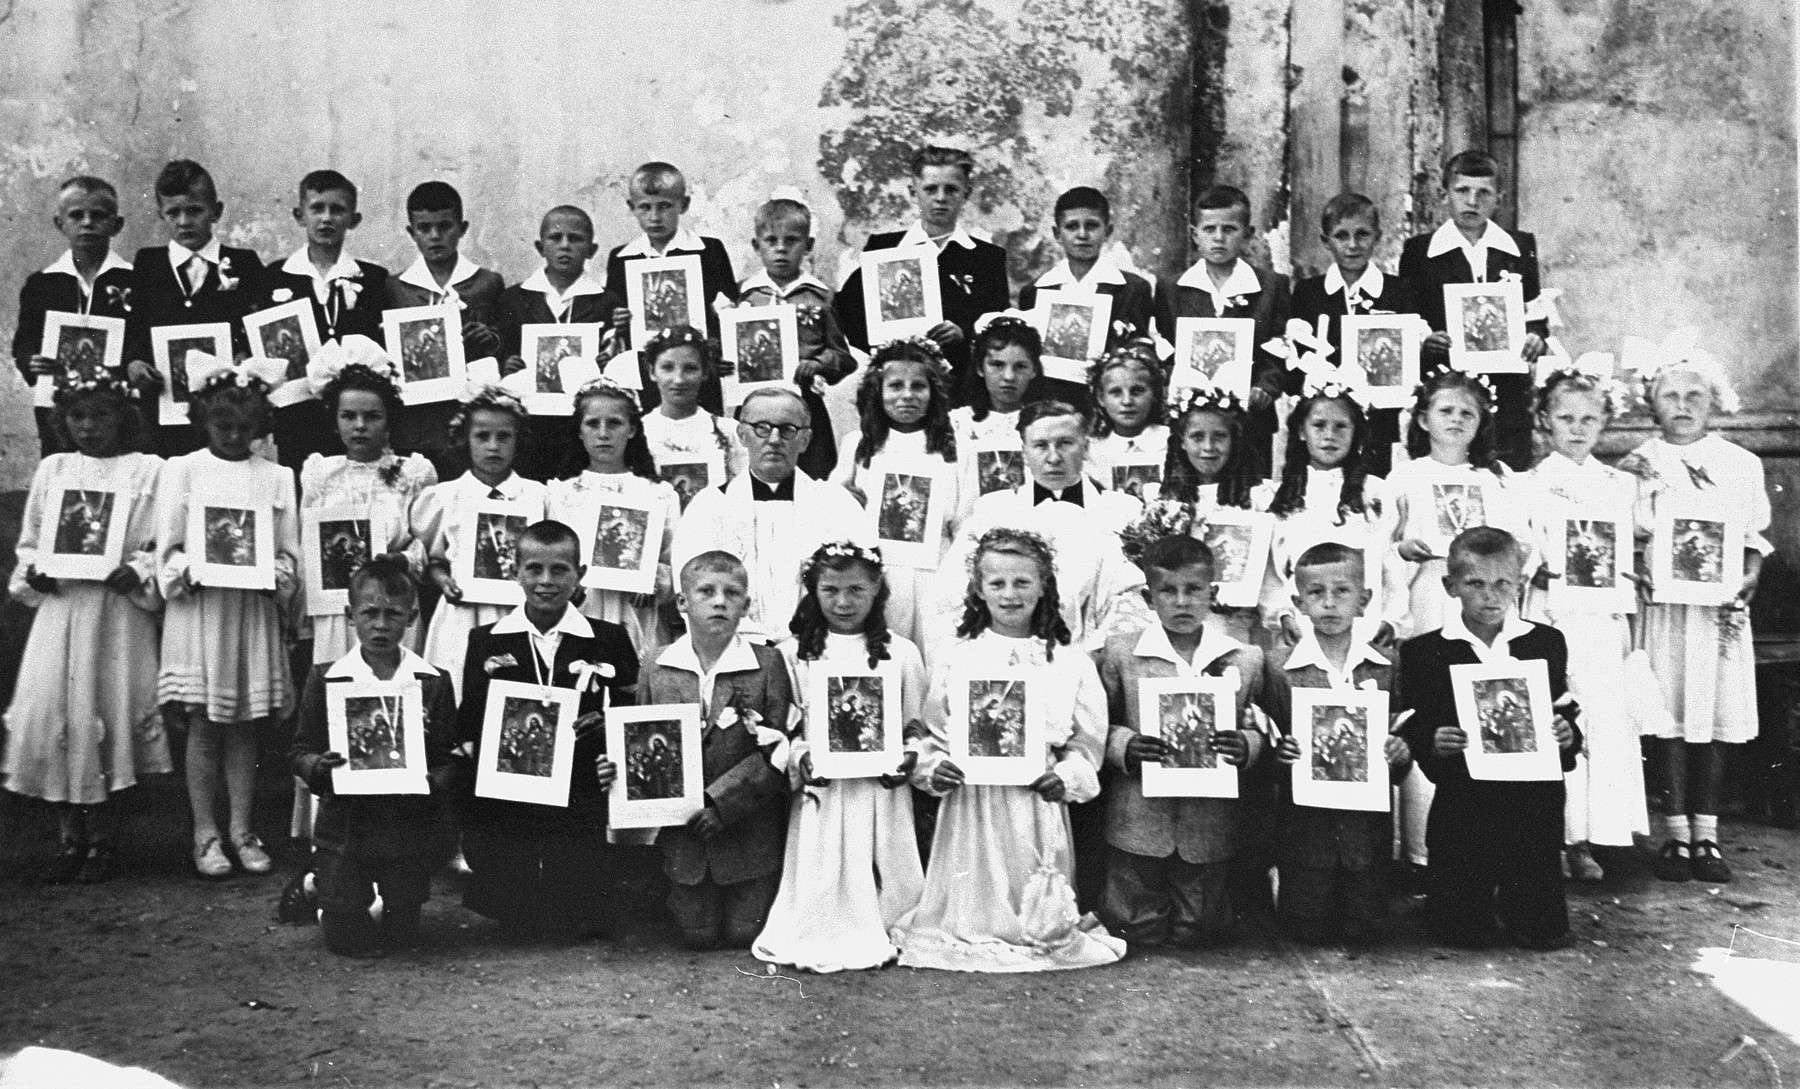 Group portrait of Polish children at their first communion holding pictures of Jesus.  Among them is Guta Tyrangiel, a Jewish child who had survived the war in hiding with a Polish family.